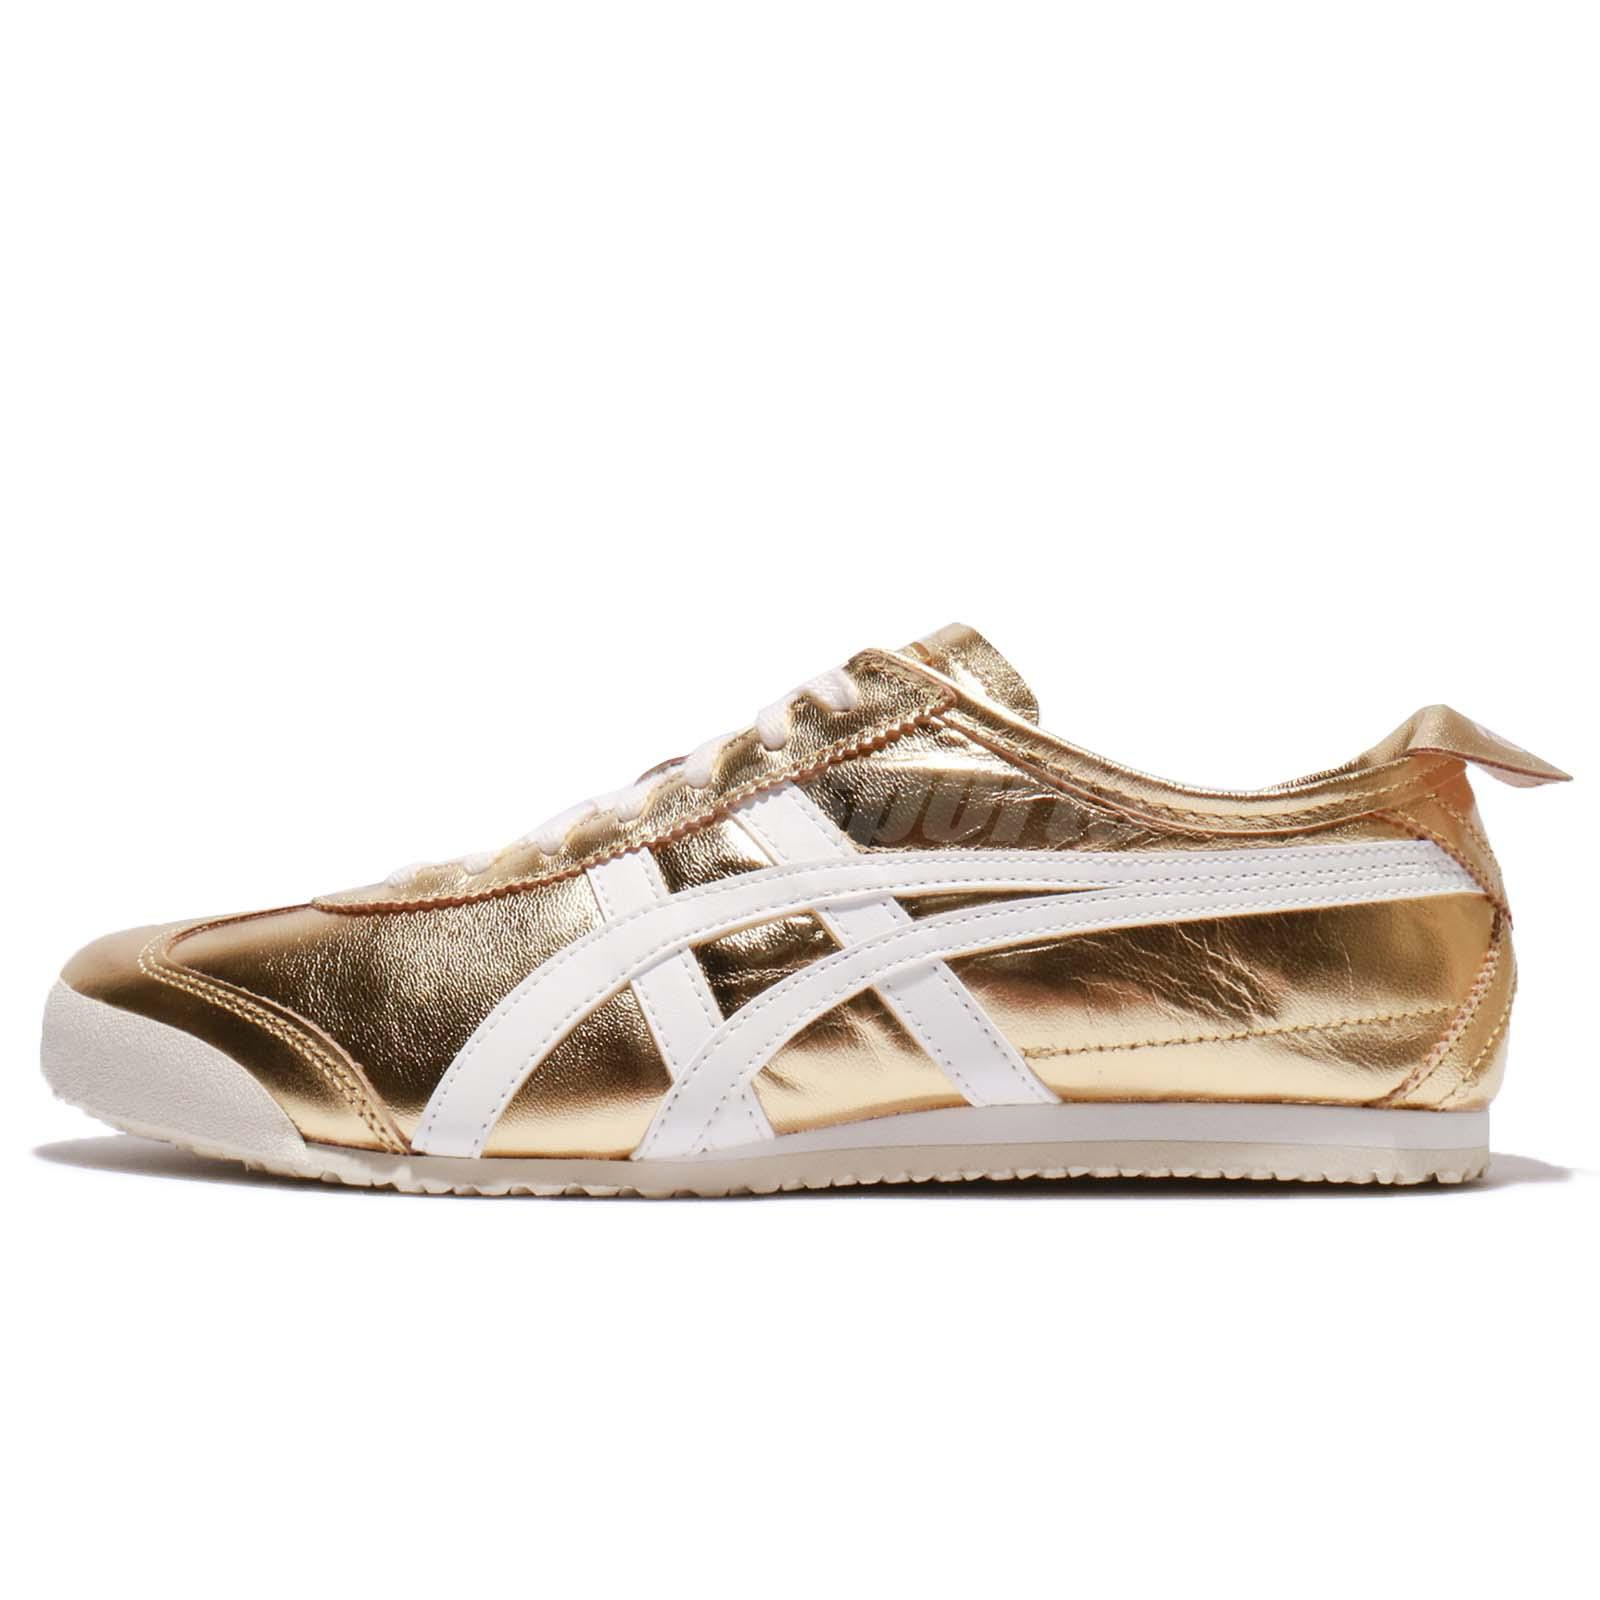 premium selection 00355 e85c1 Details about Asics Onitsuka Tiger Mexico 66 Gold White Men Casual Shoes  Sneakers THL7C2-9401